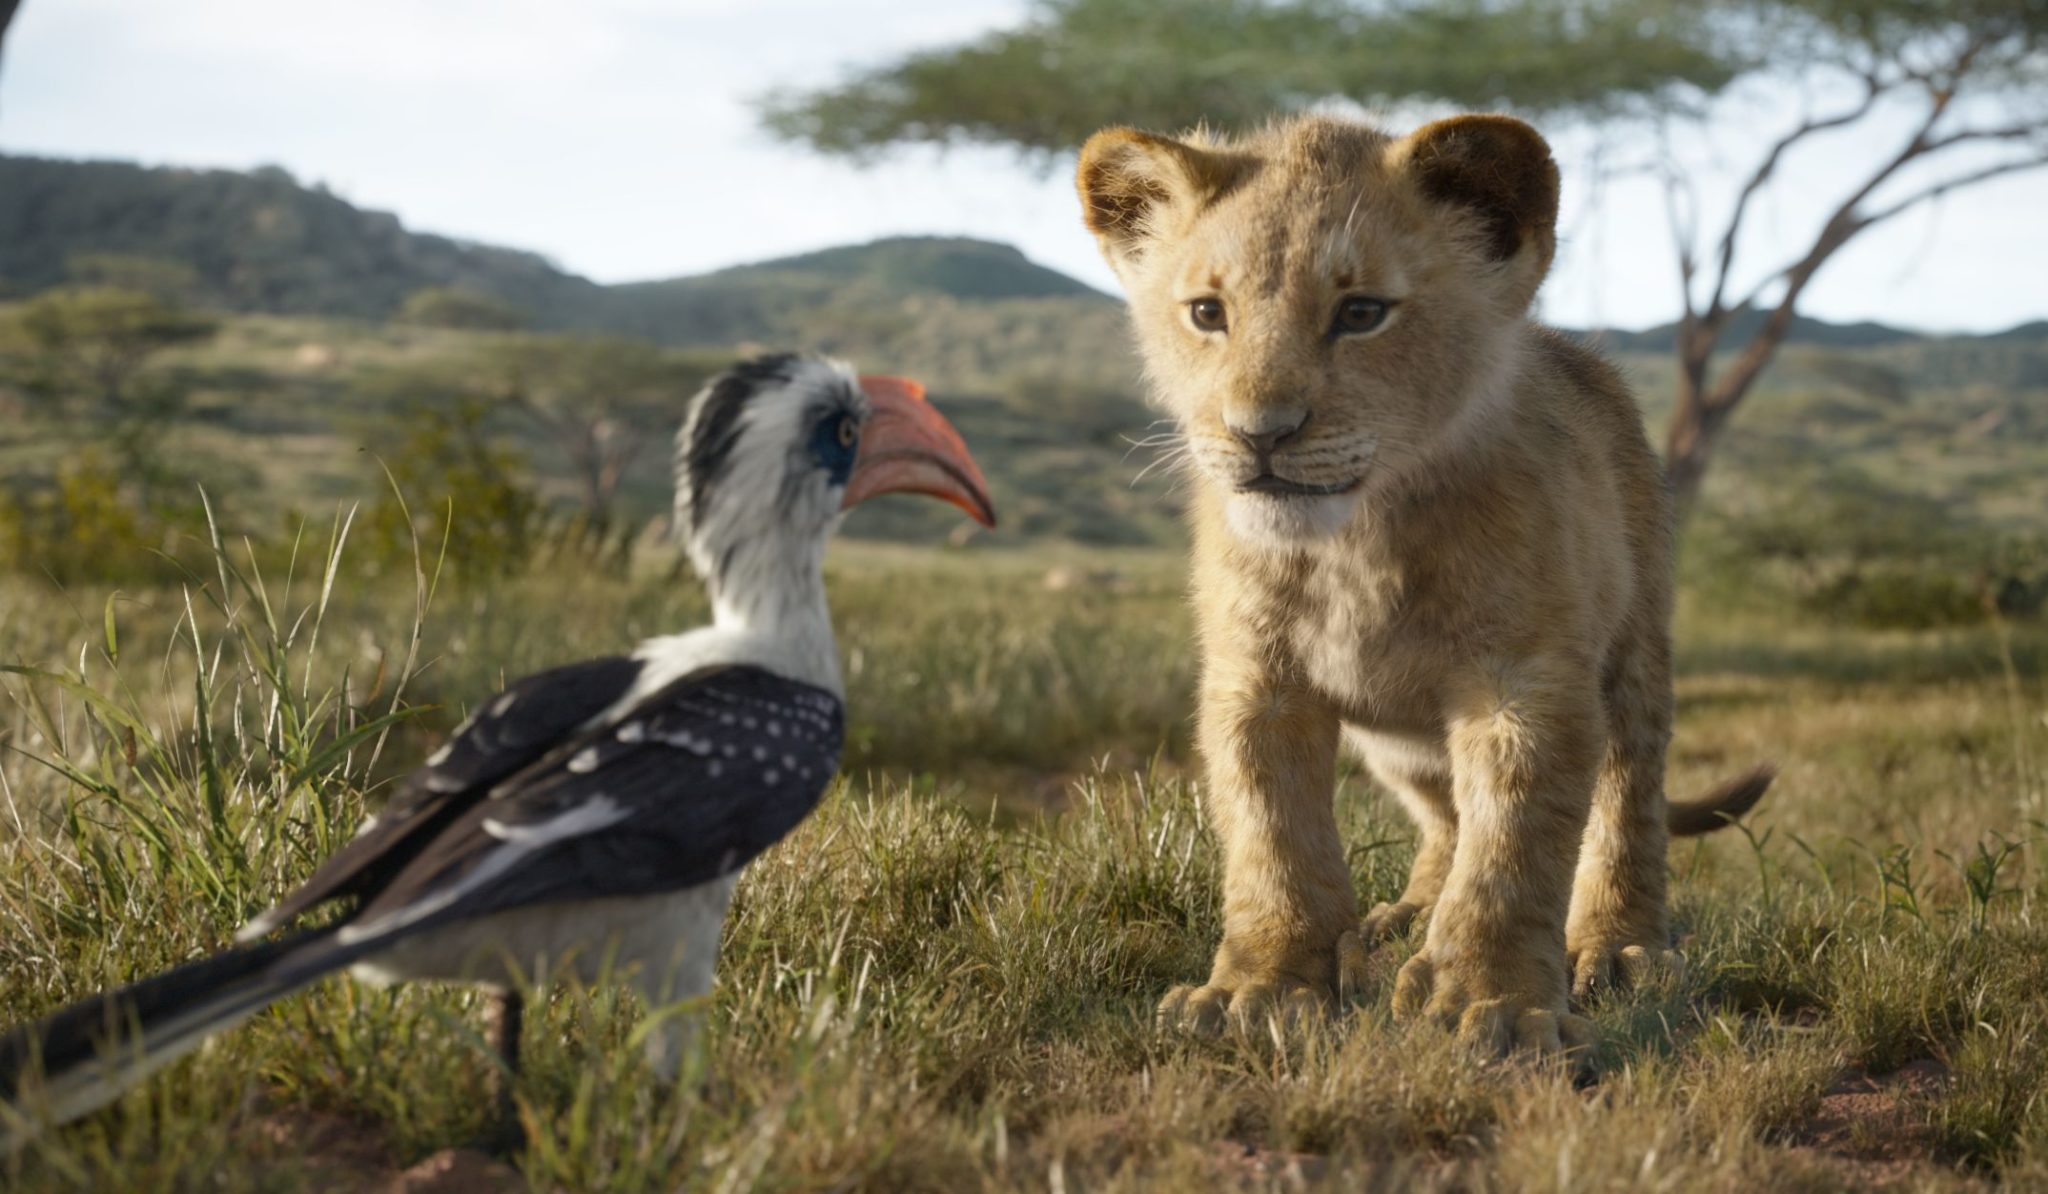 Photoreal animated characters in <i>The Lion King</i>.